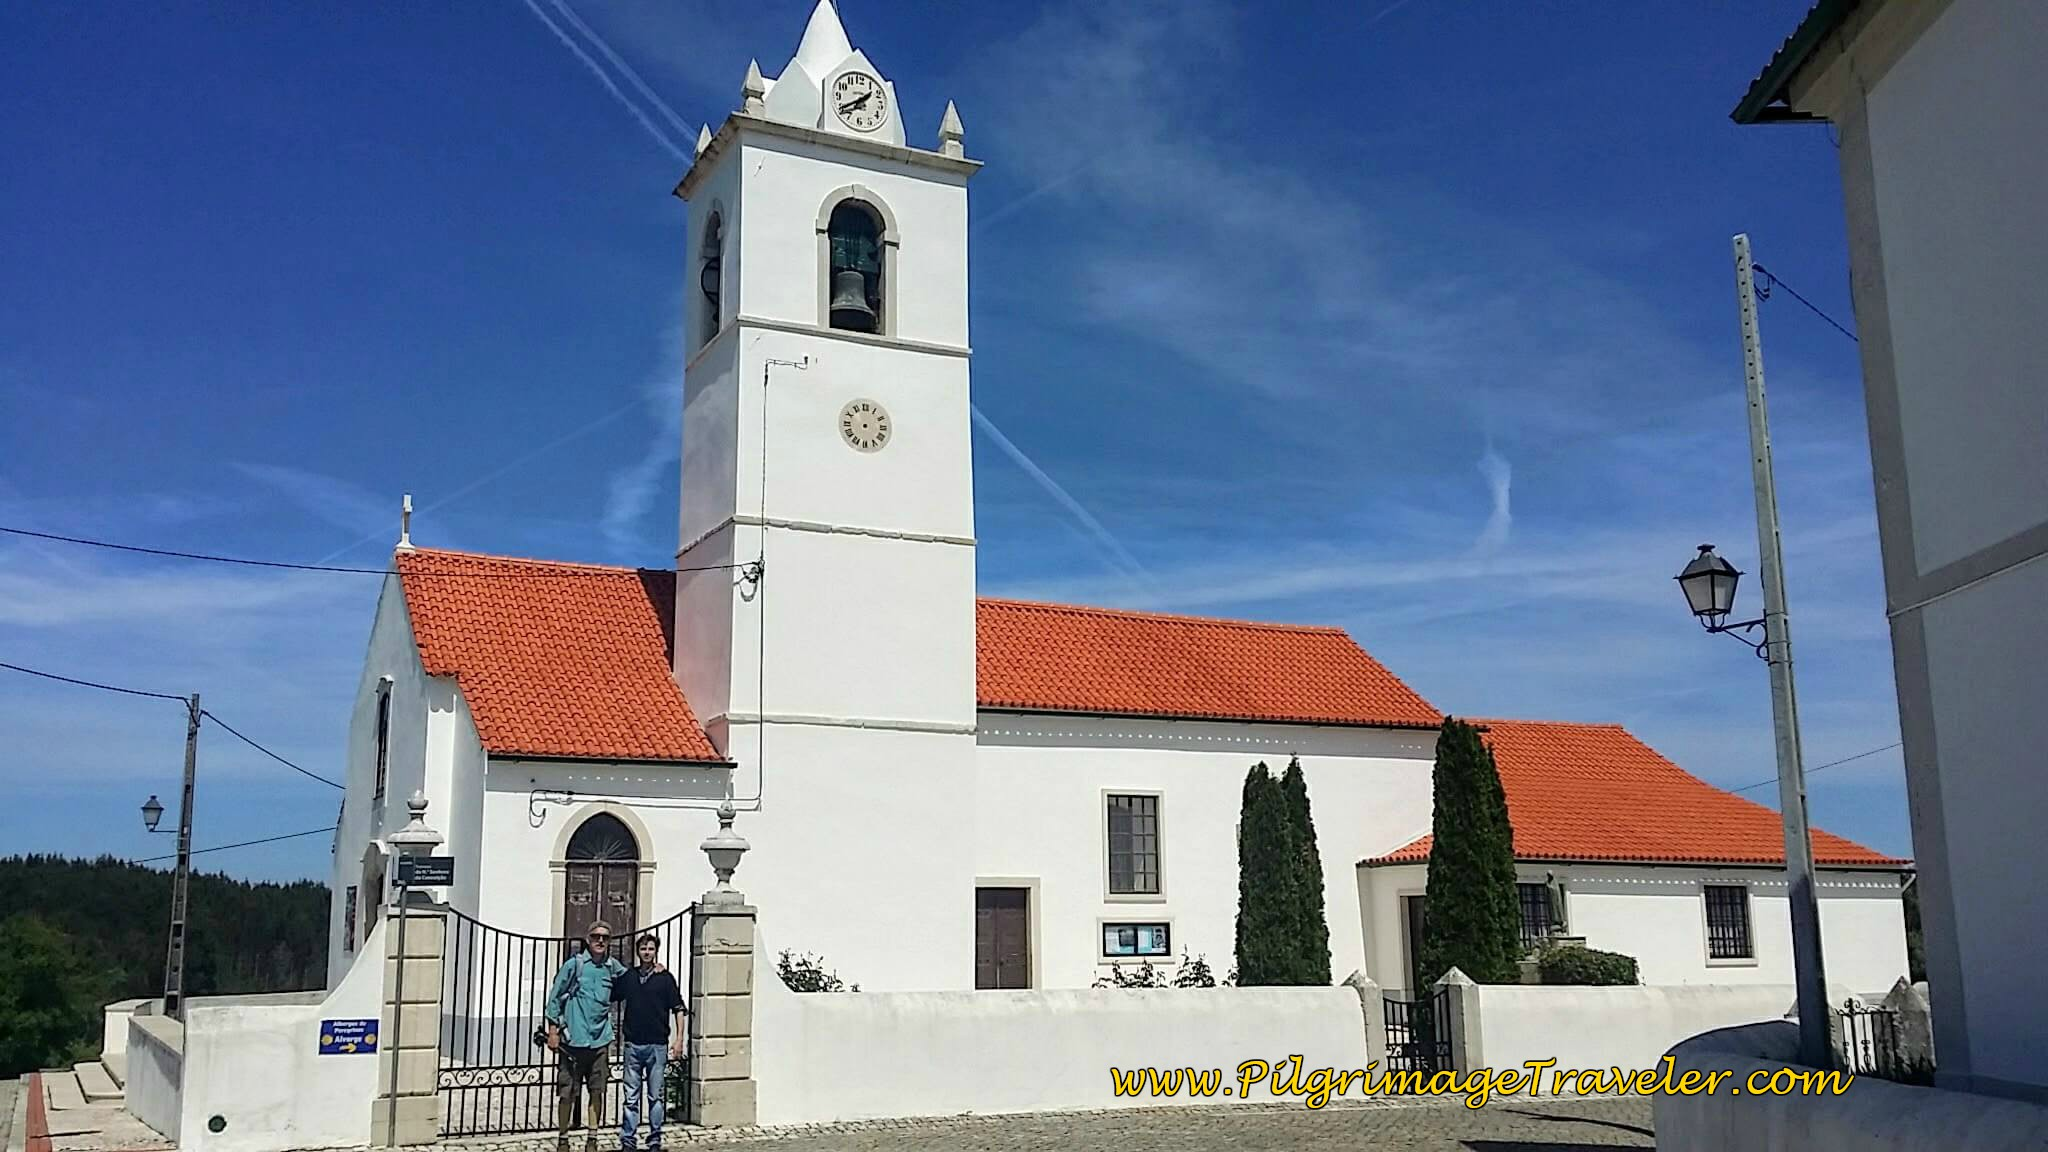 Prominent Church of Alvorge, Portugal